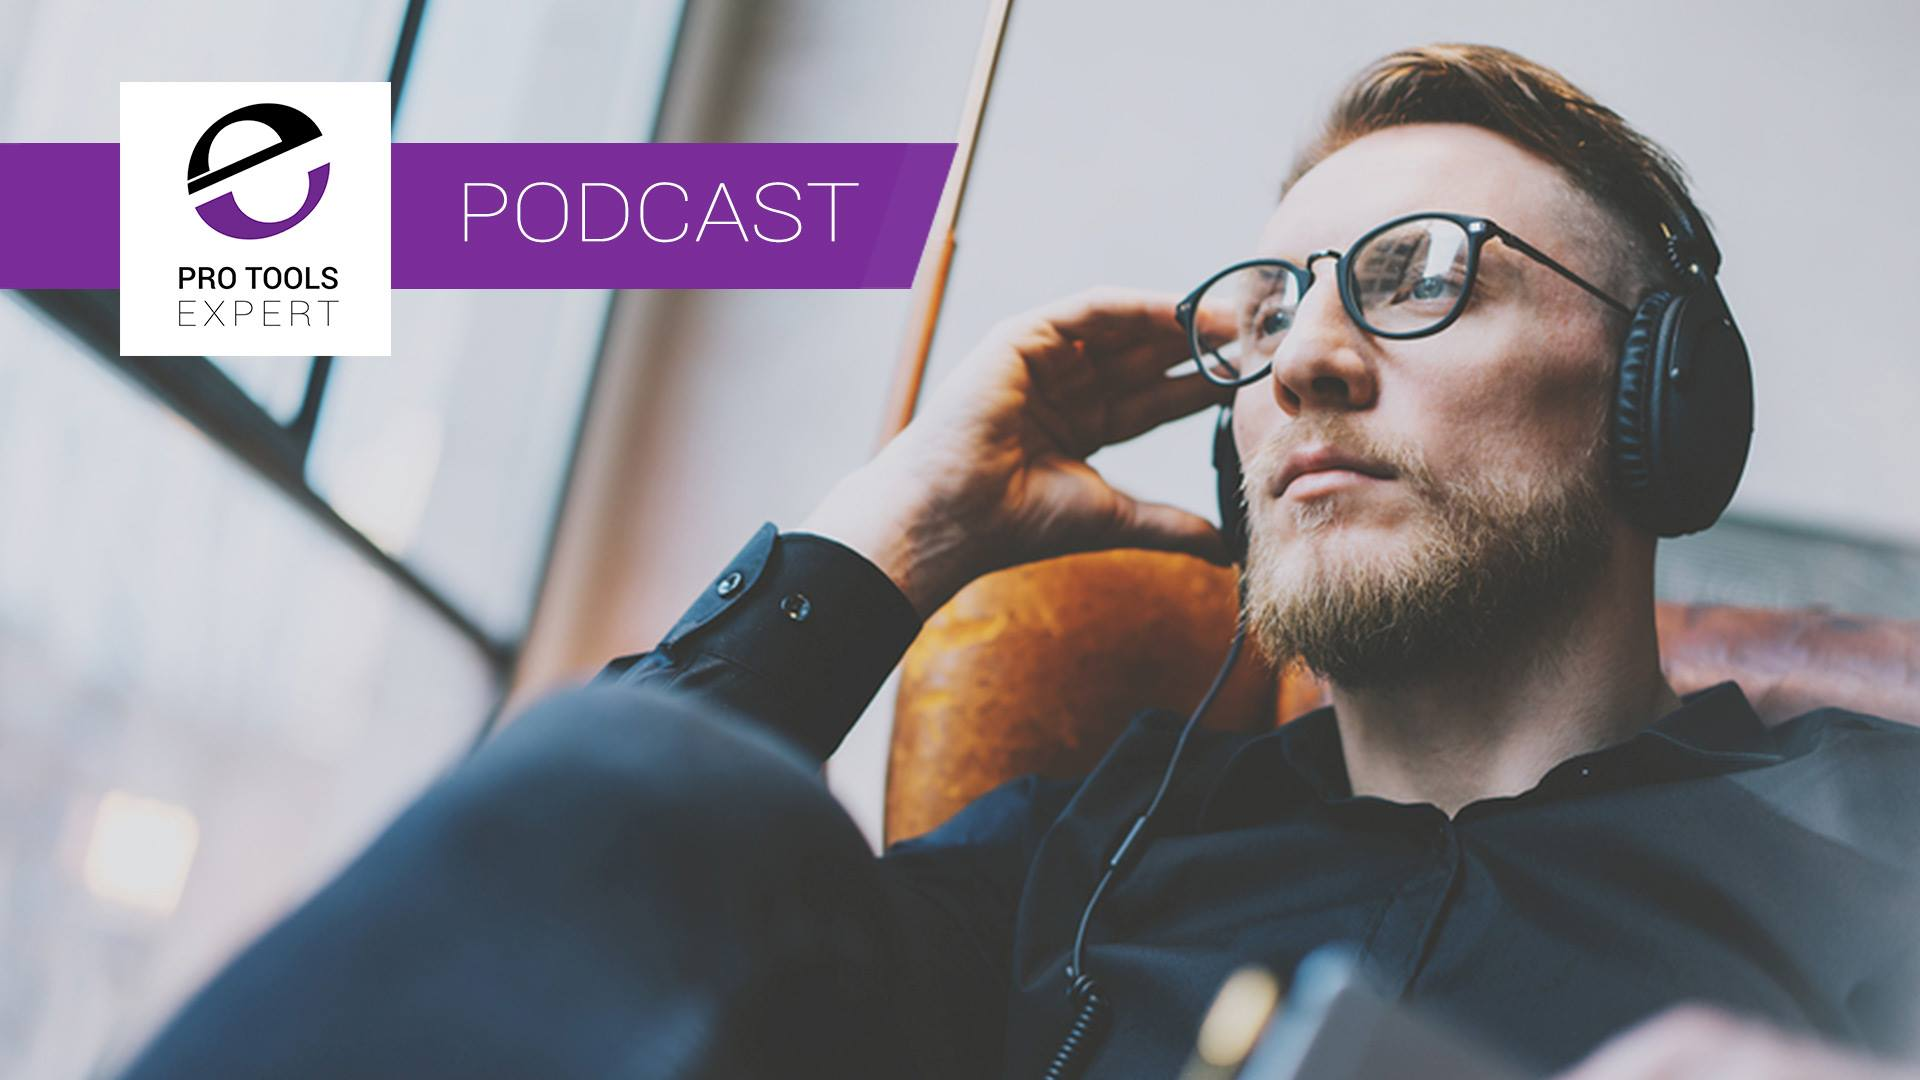 Pro Tools Expert Podcast Episode 242